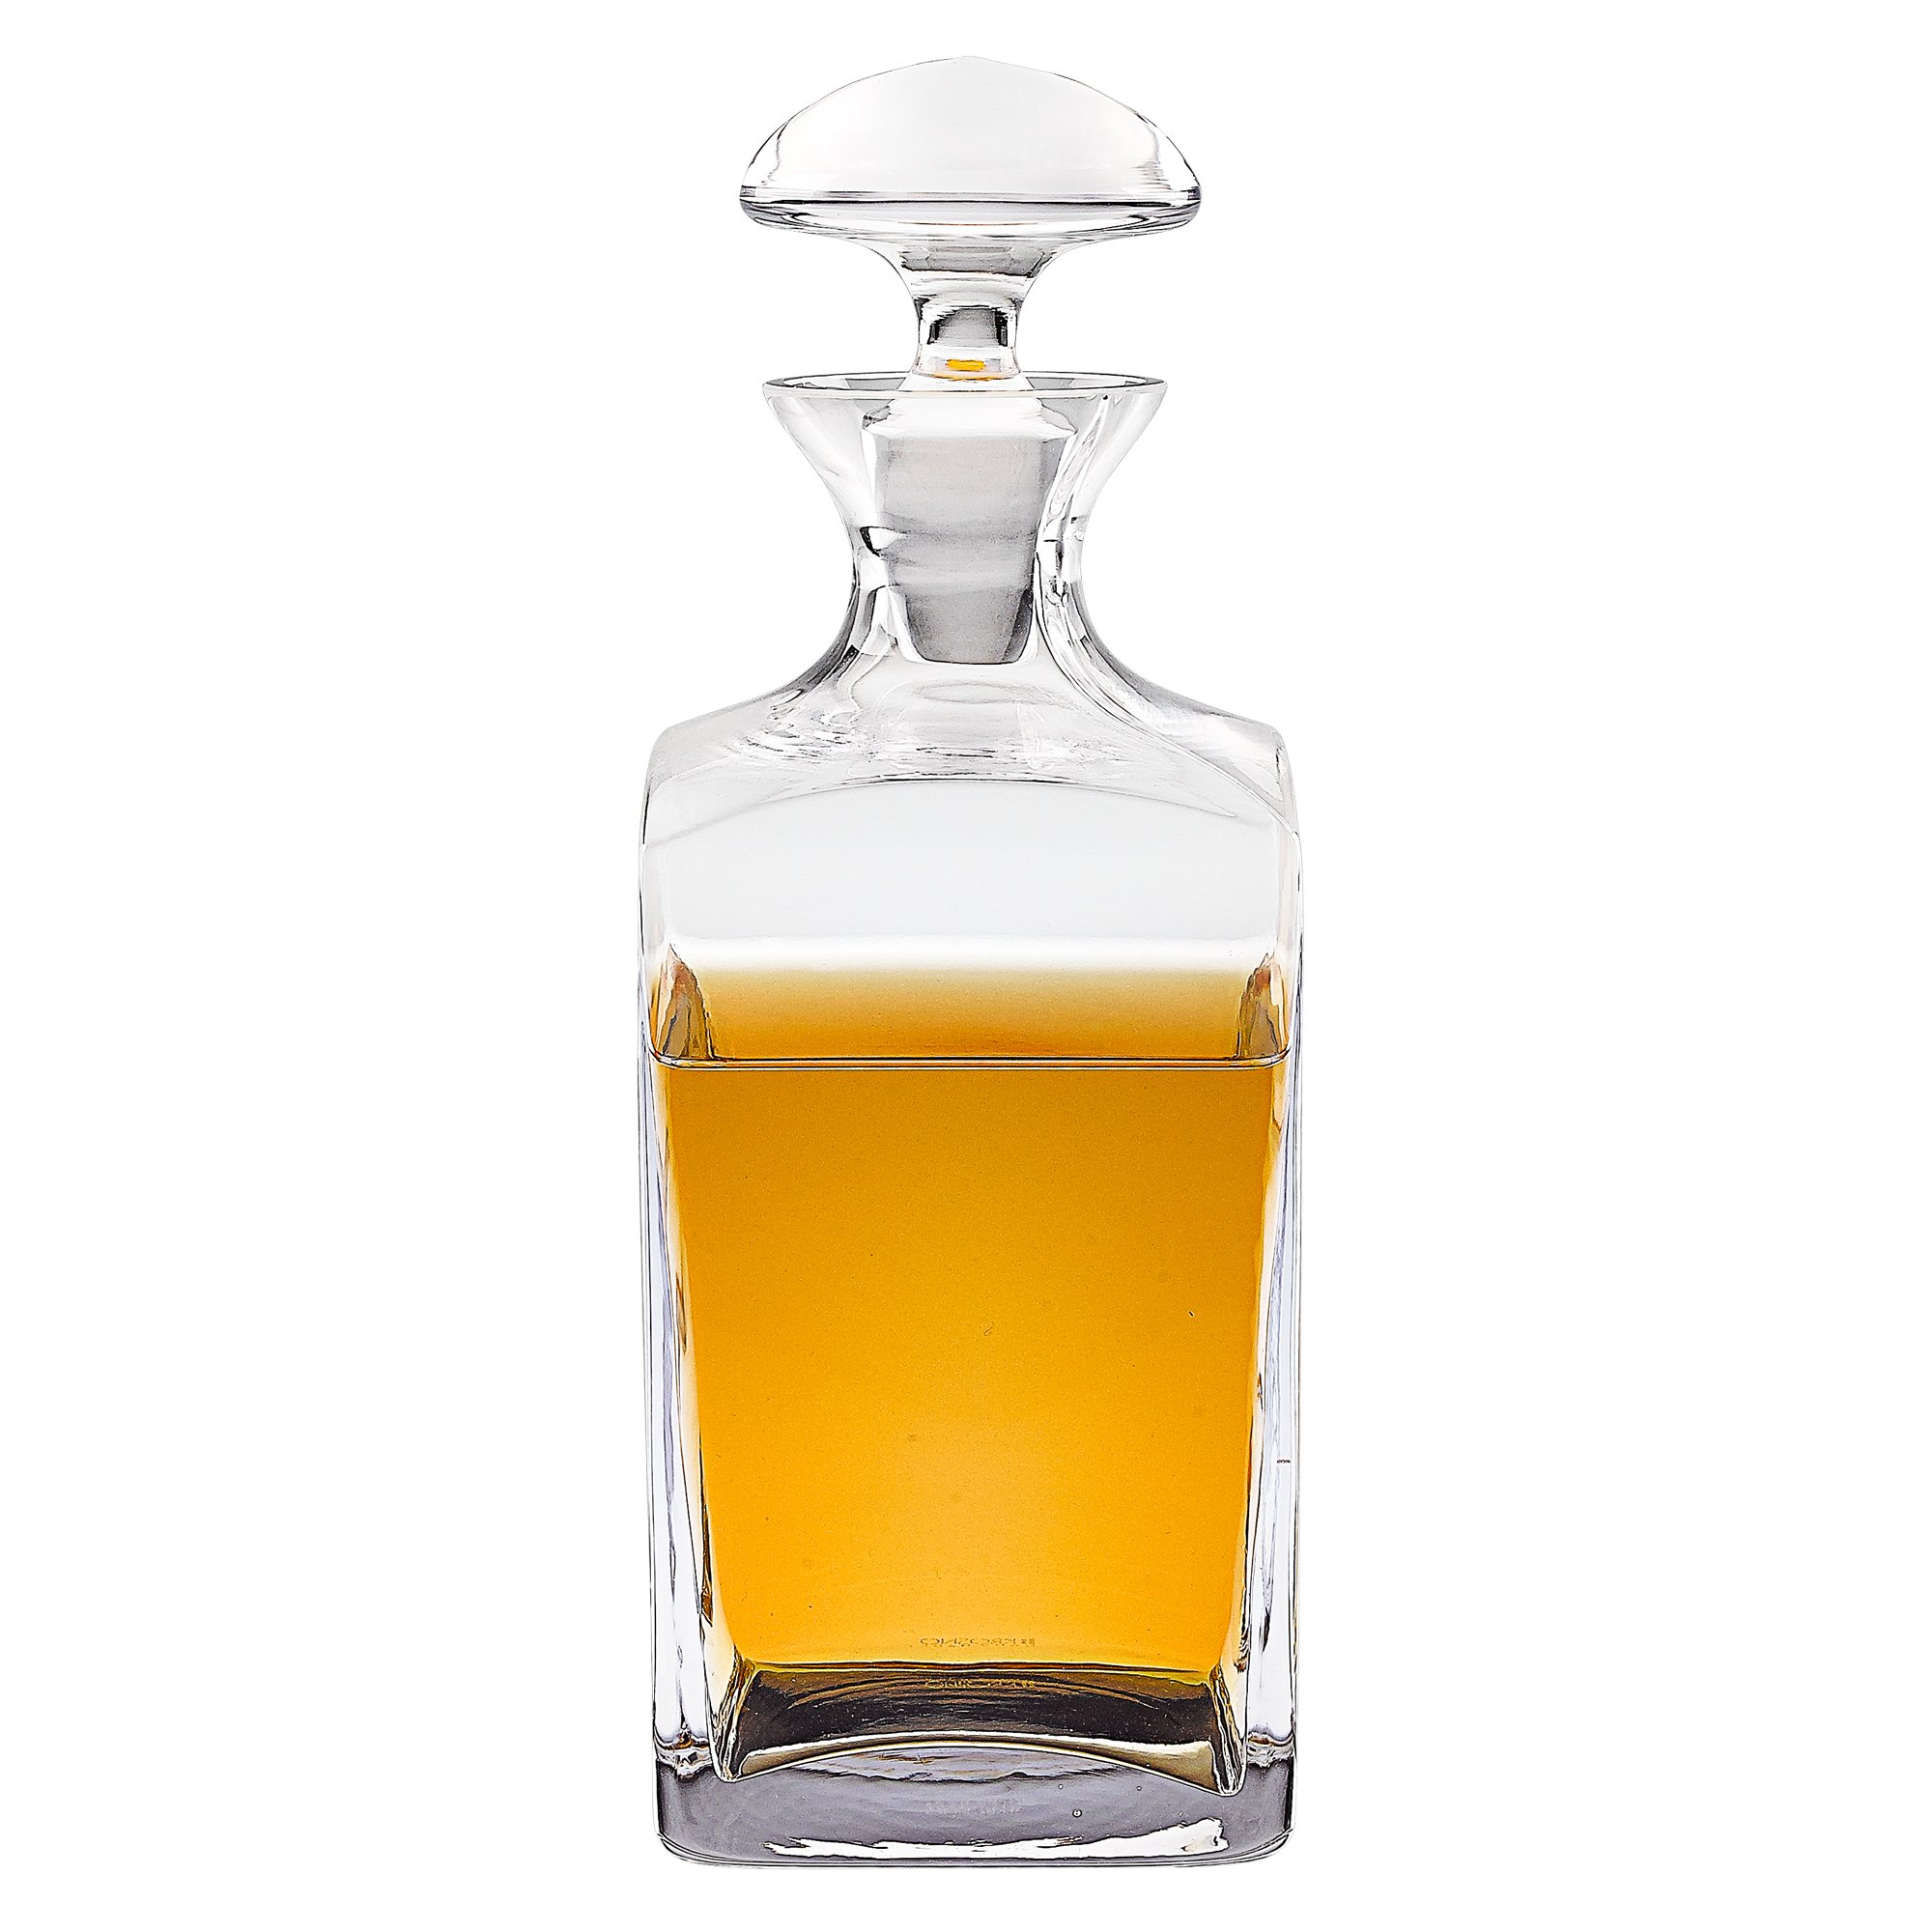 Badash Andre Square European Mouth Blown 34 oz. Scotch or Whiskey Lead Free Crystal Decanter H10.5''